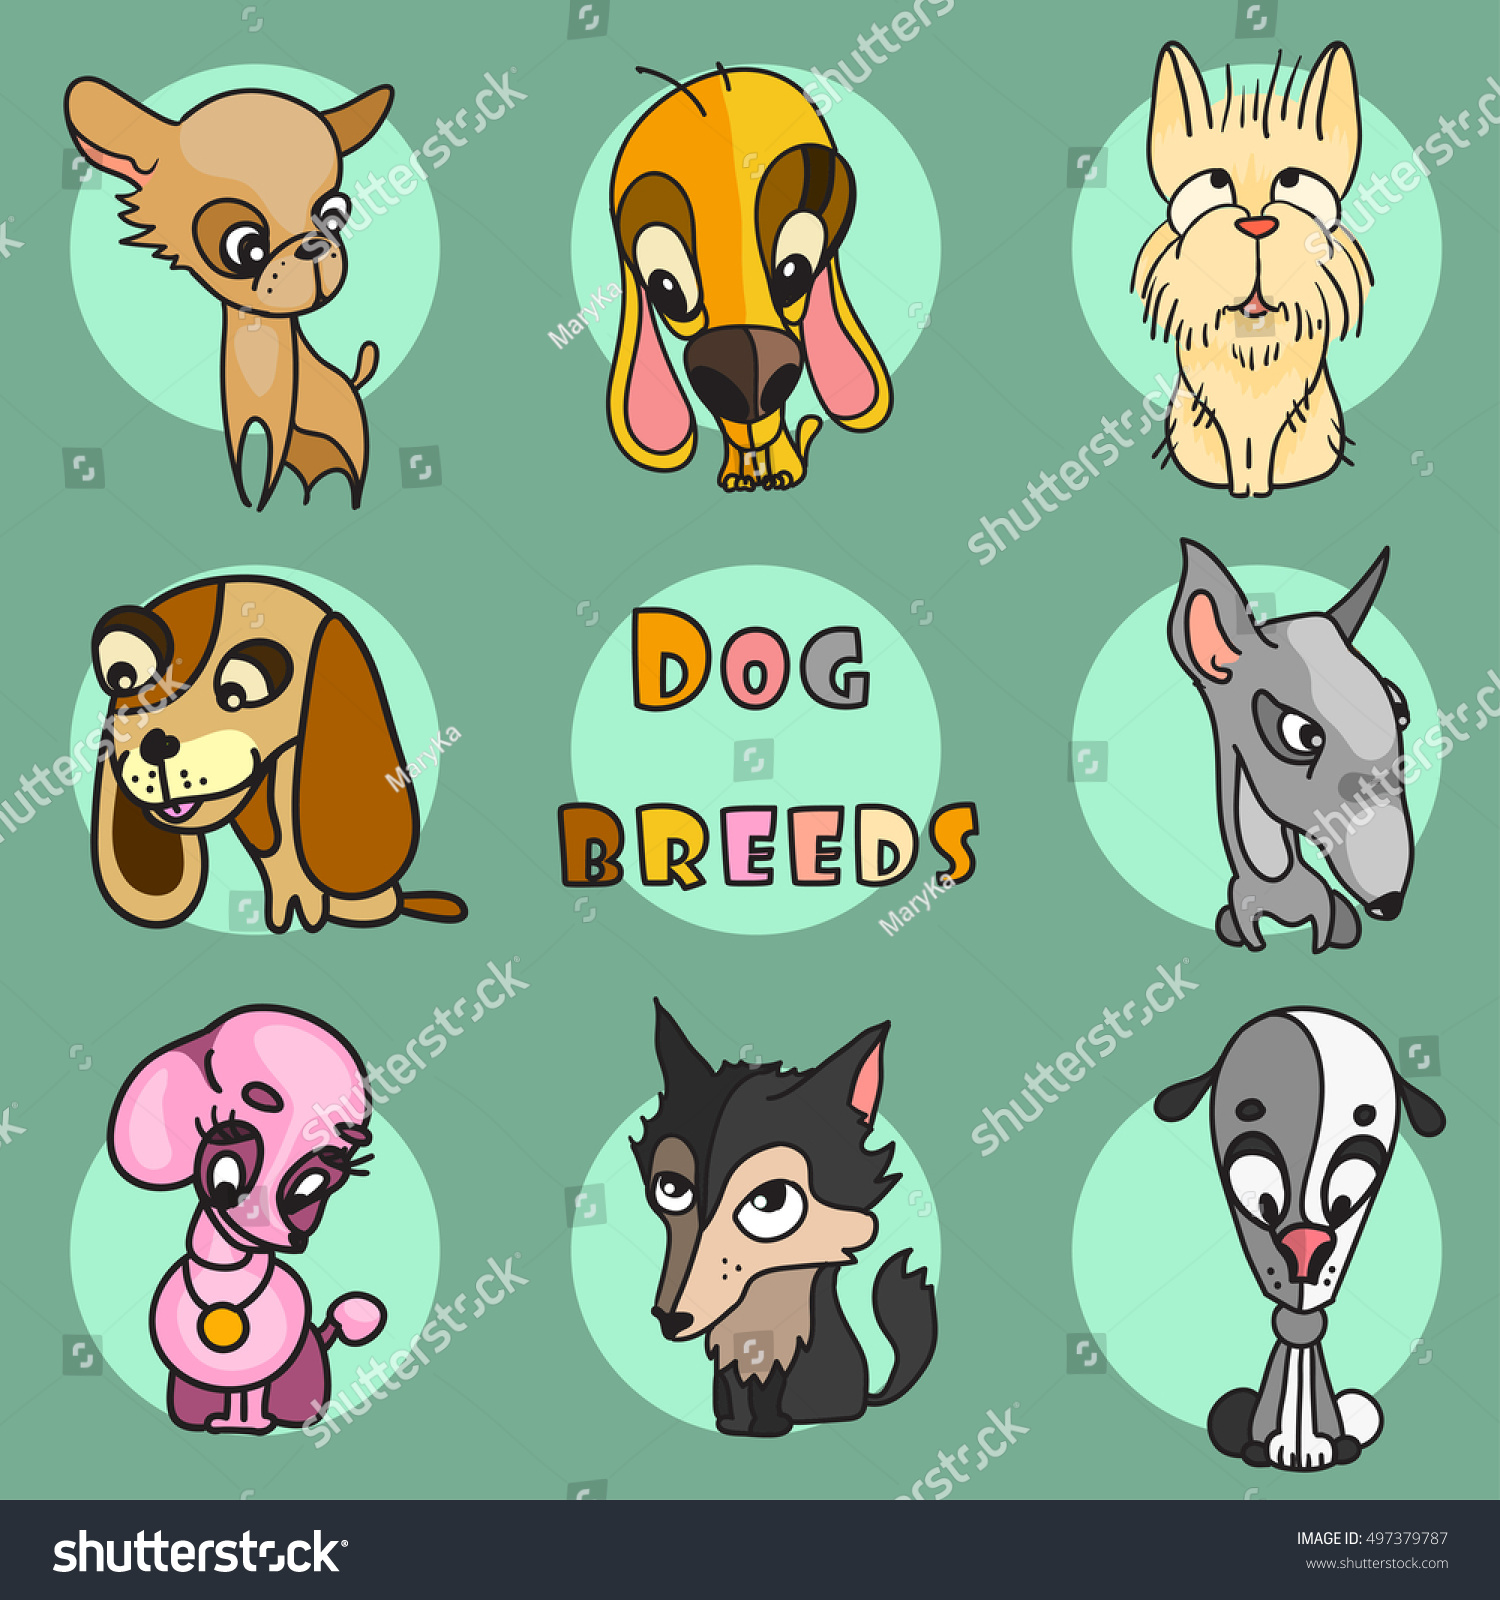 Cartoon Characters That Start With R : Dog cartoon characters that start with r